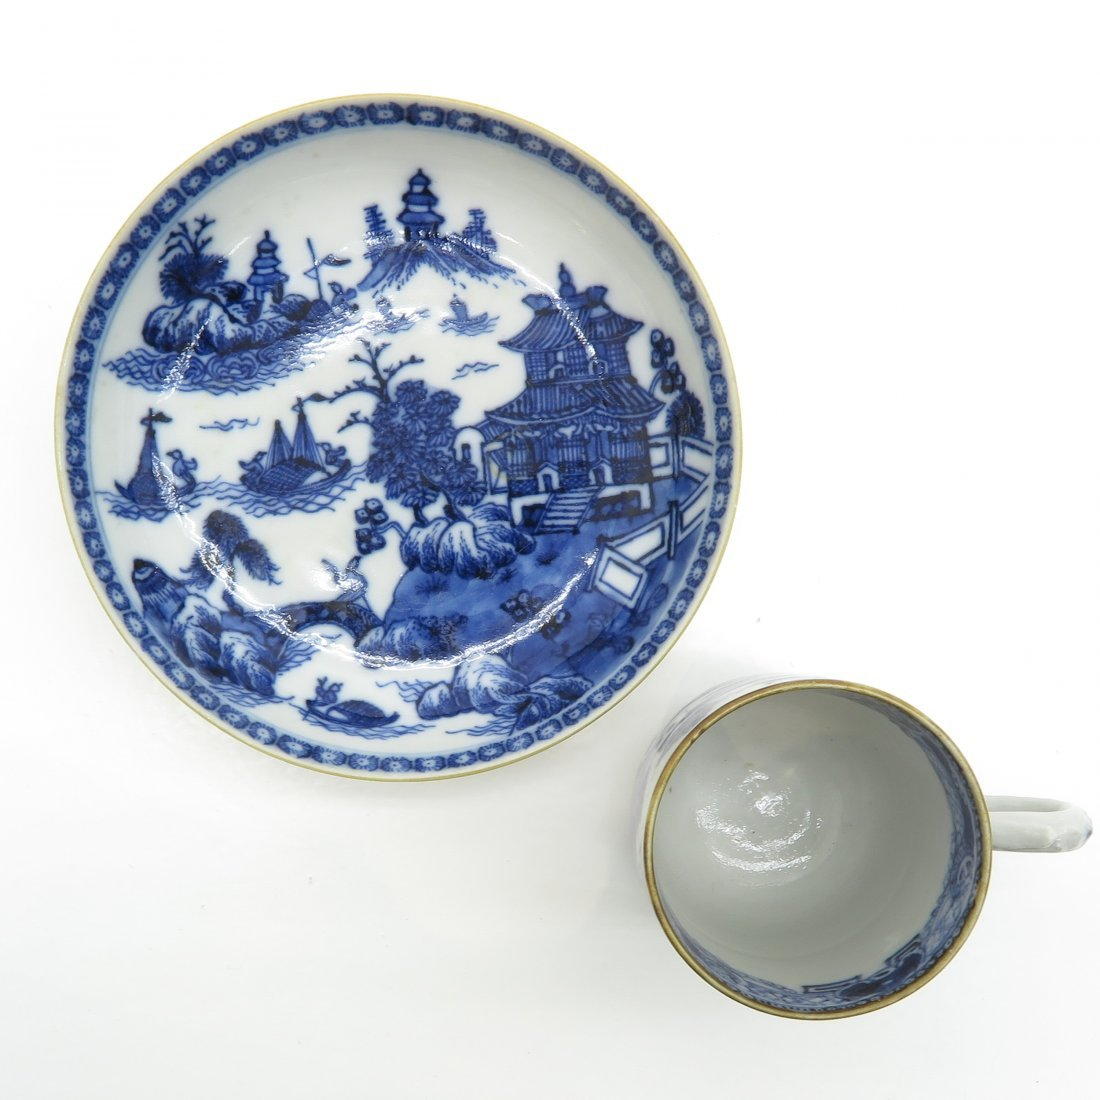 China Porcelain Cup and Saucer Circa 1800 - 5